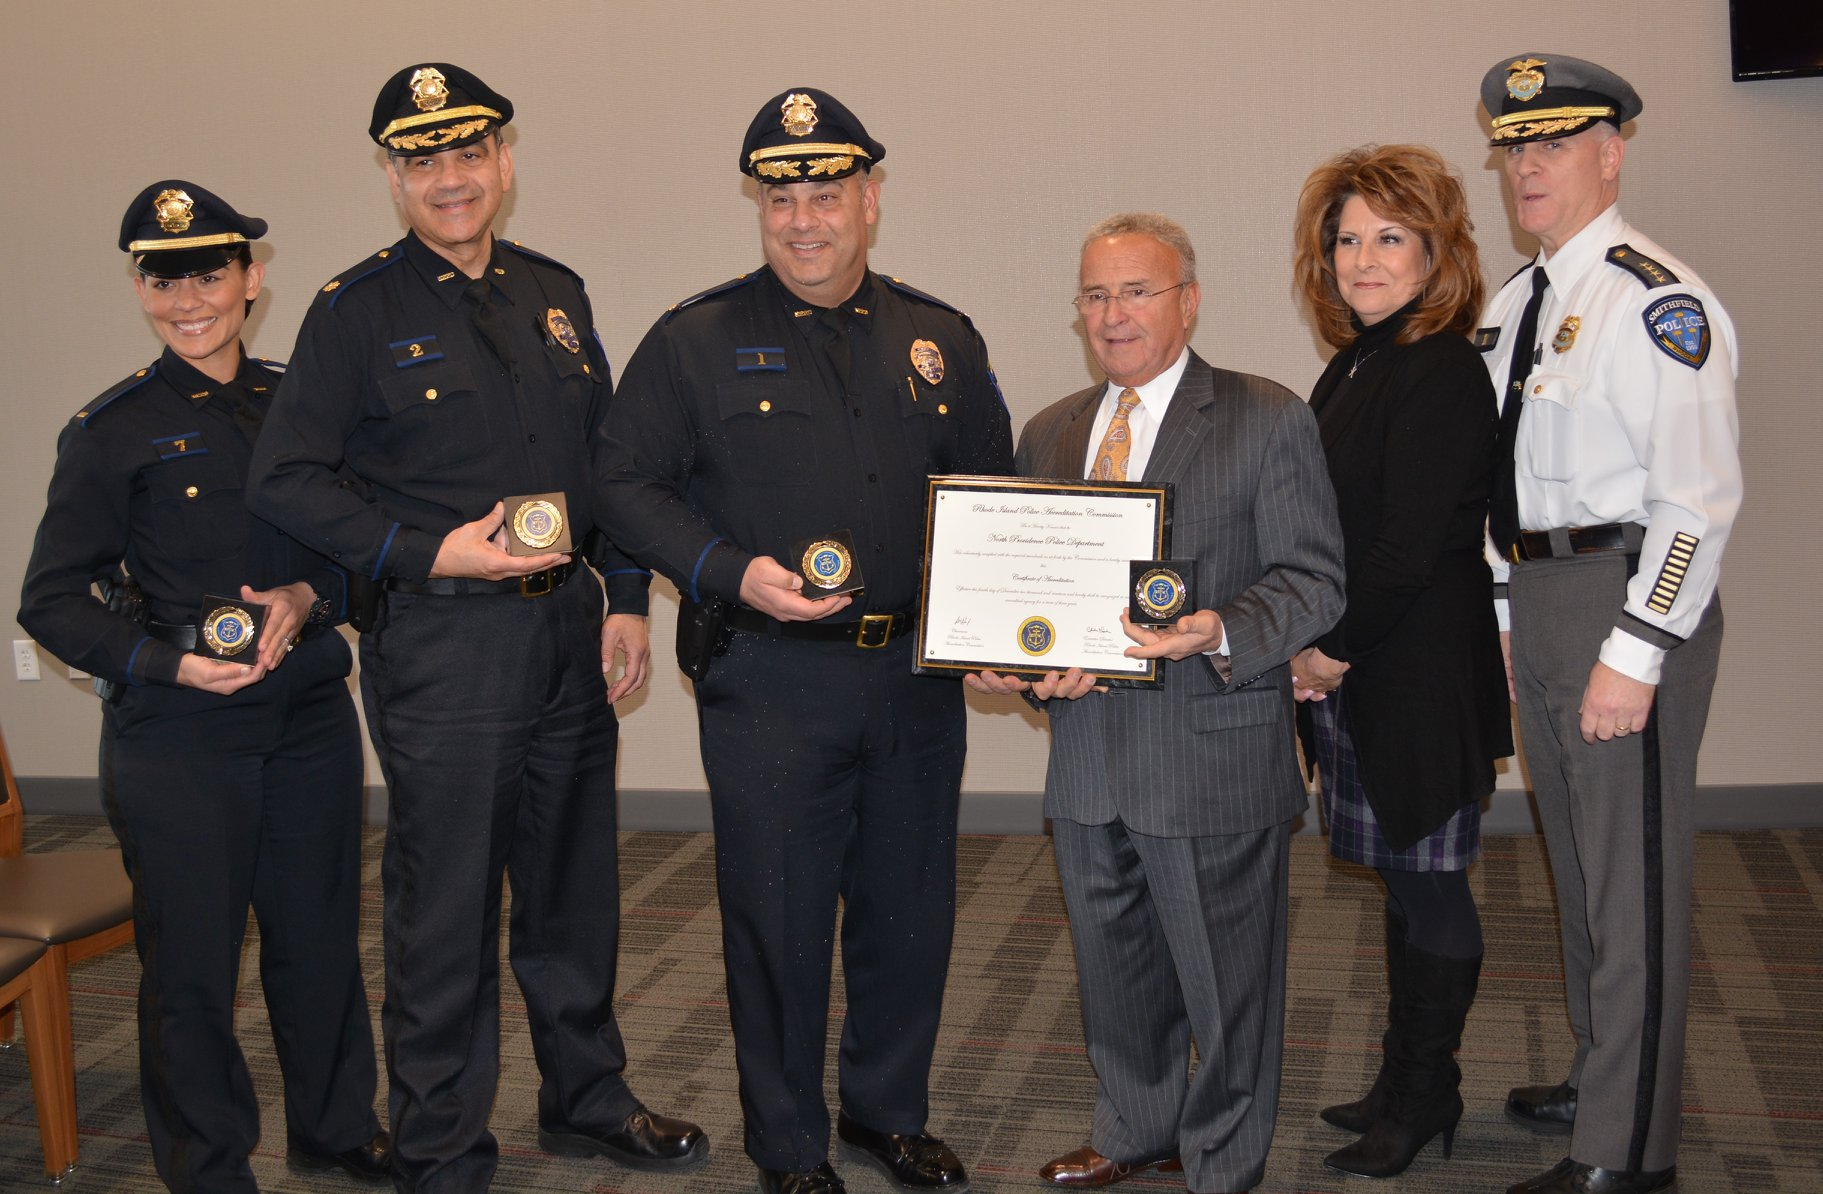 North Providence Police Department Attains RIPAC Accreditation